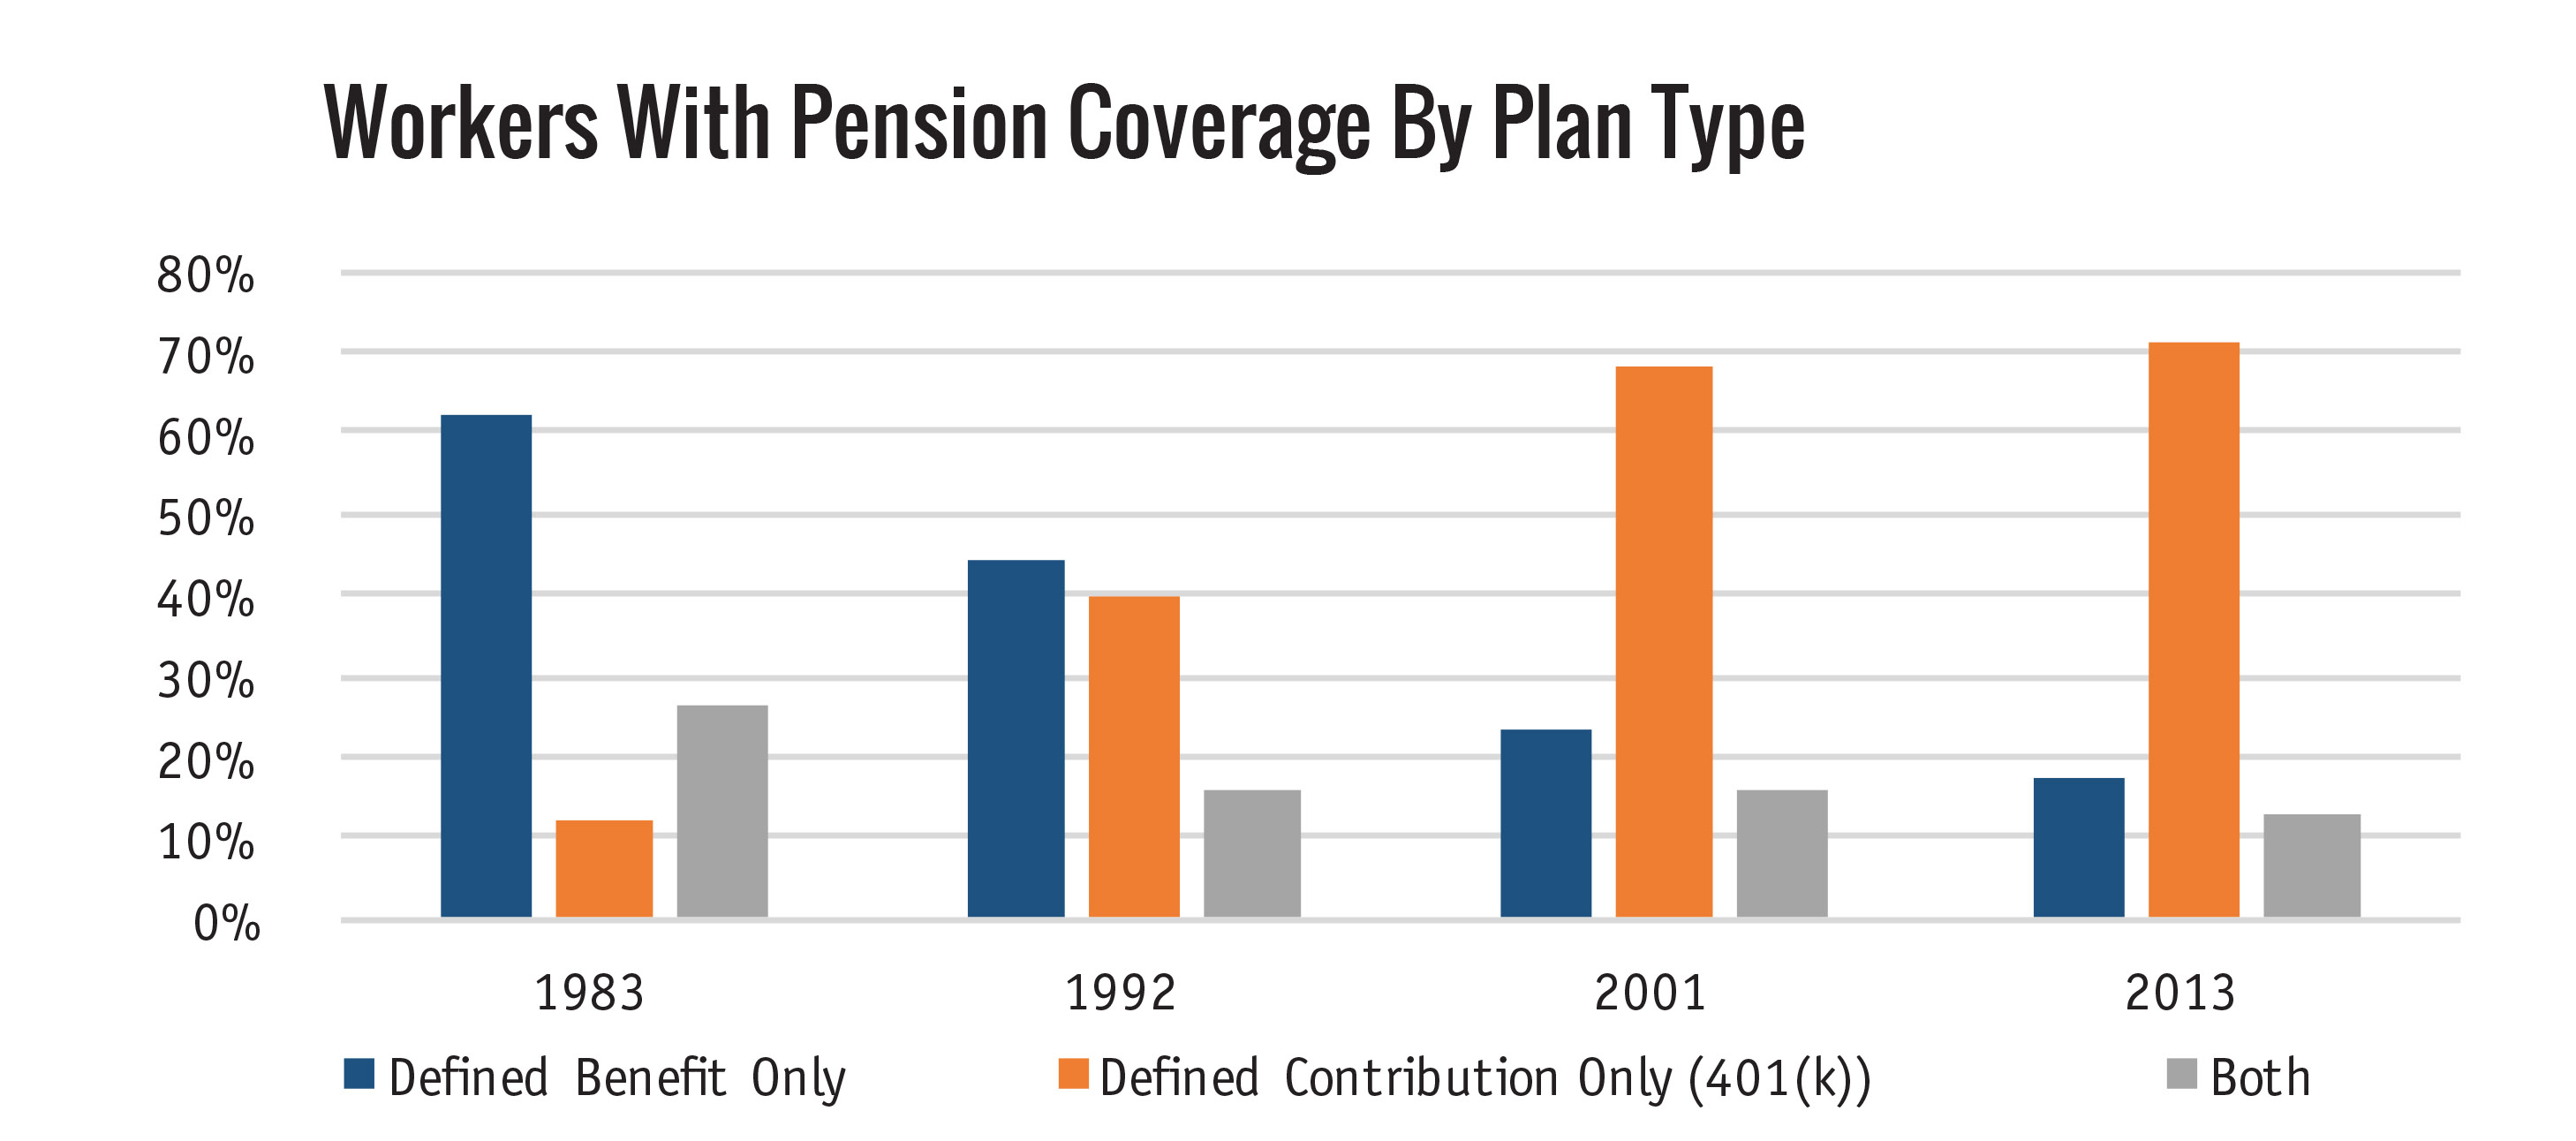 Workers with pension plans